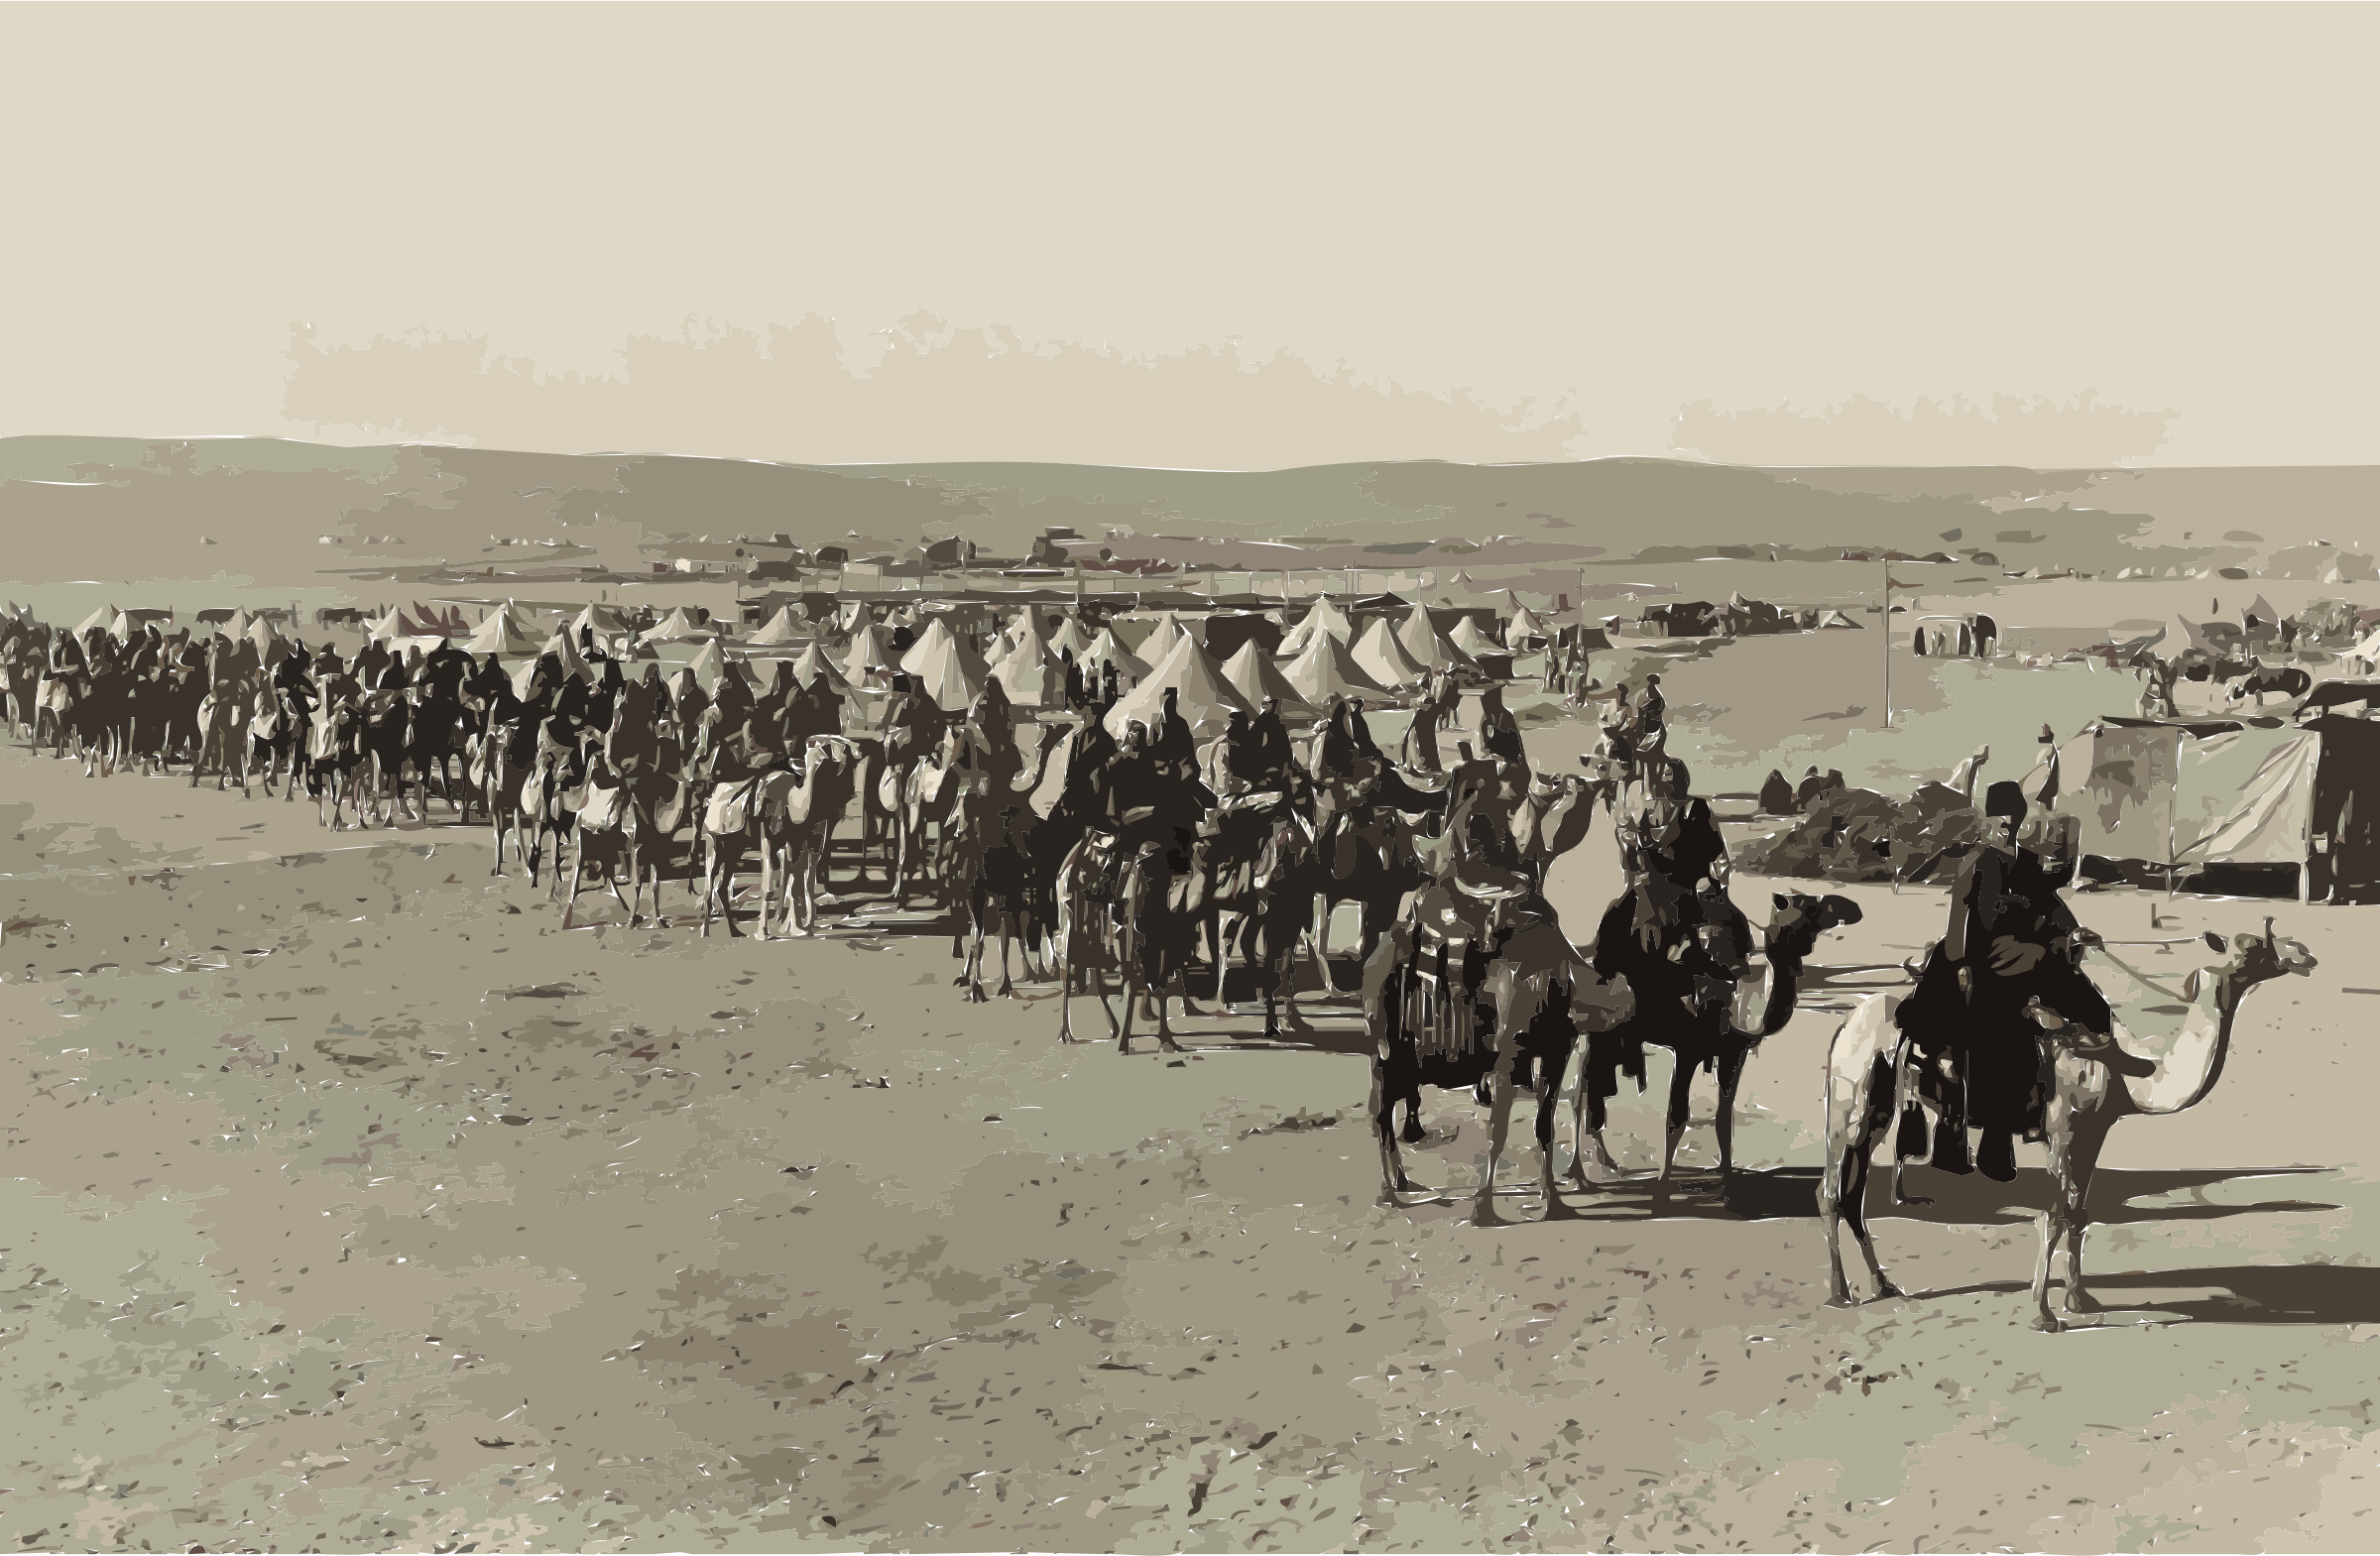 The camel corps at Beersheba2 by 3wfccu+dfr7lirxlbqkc